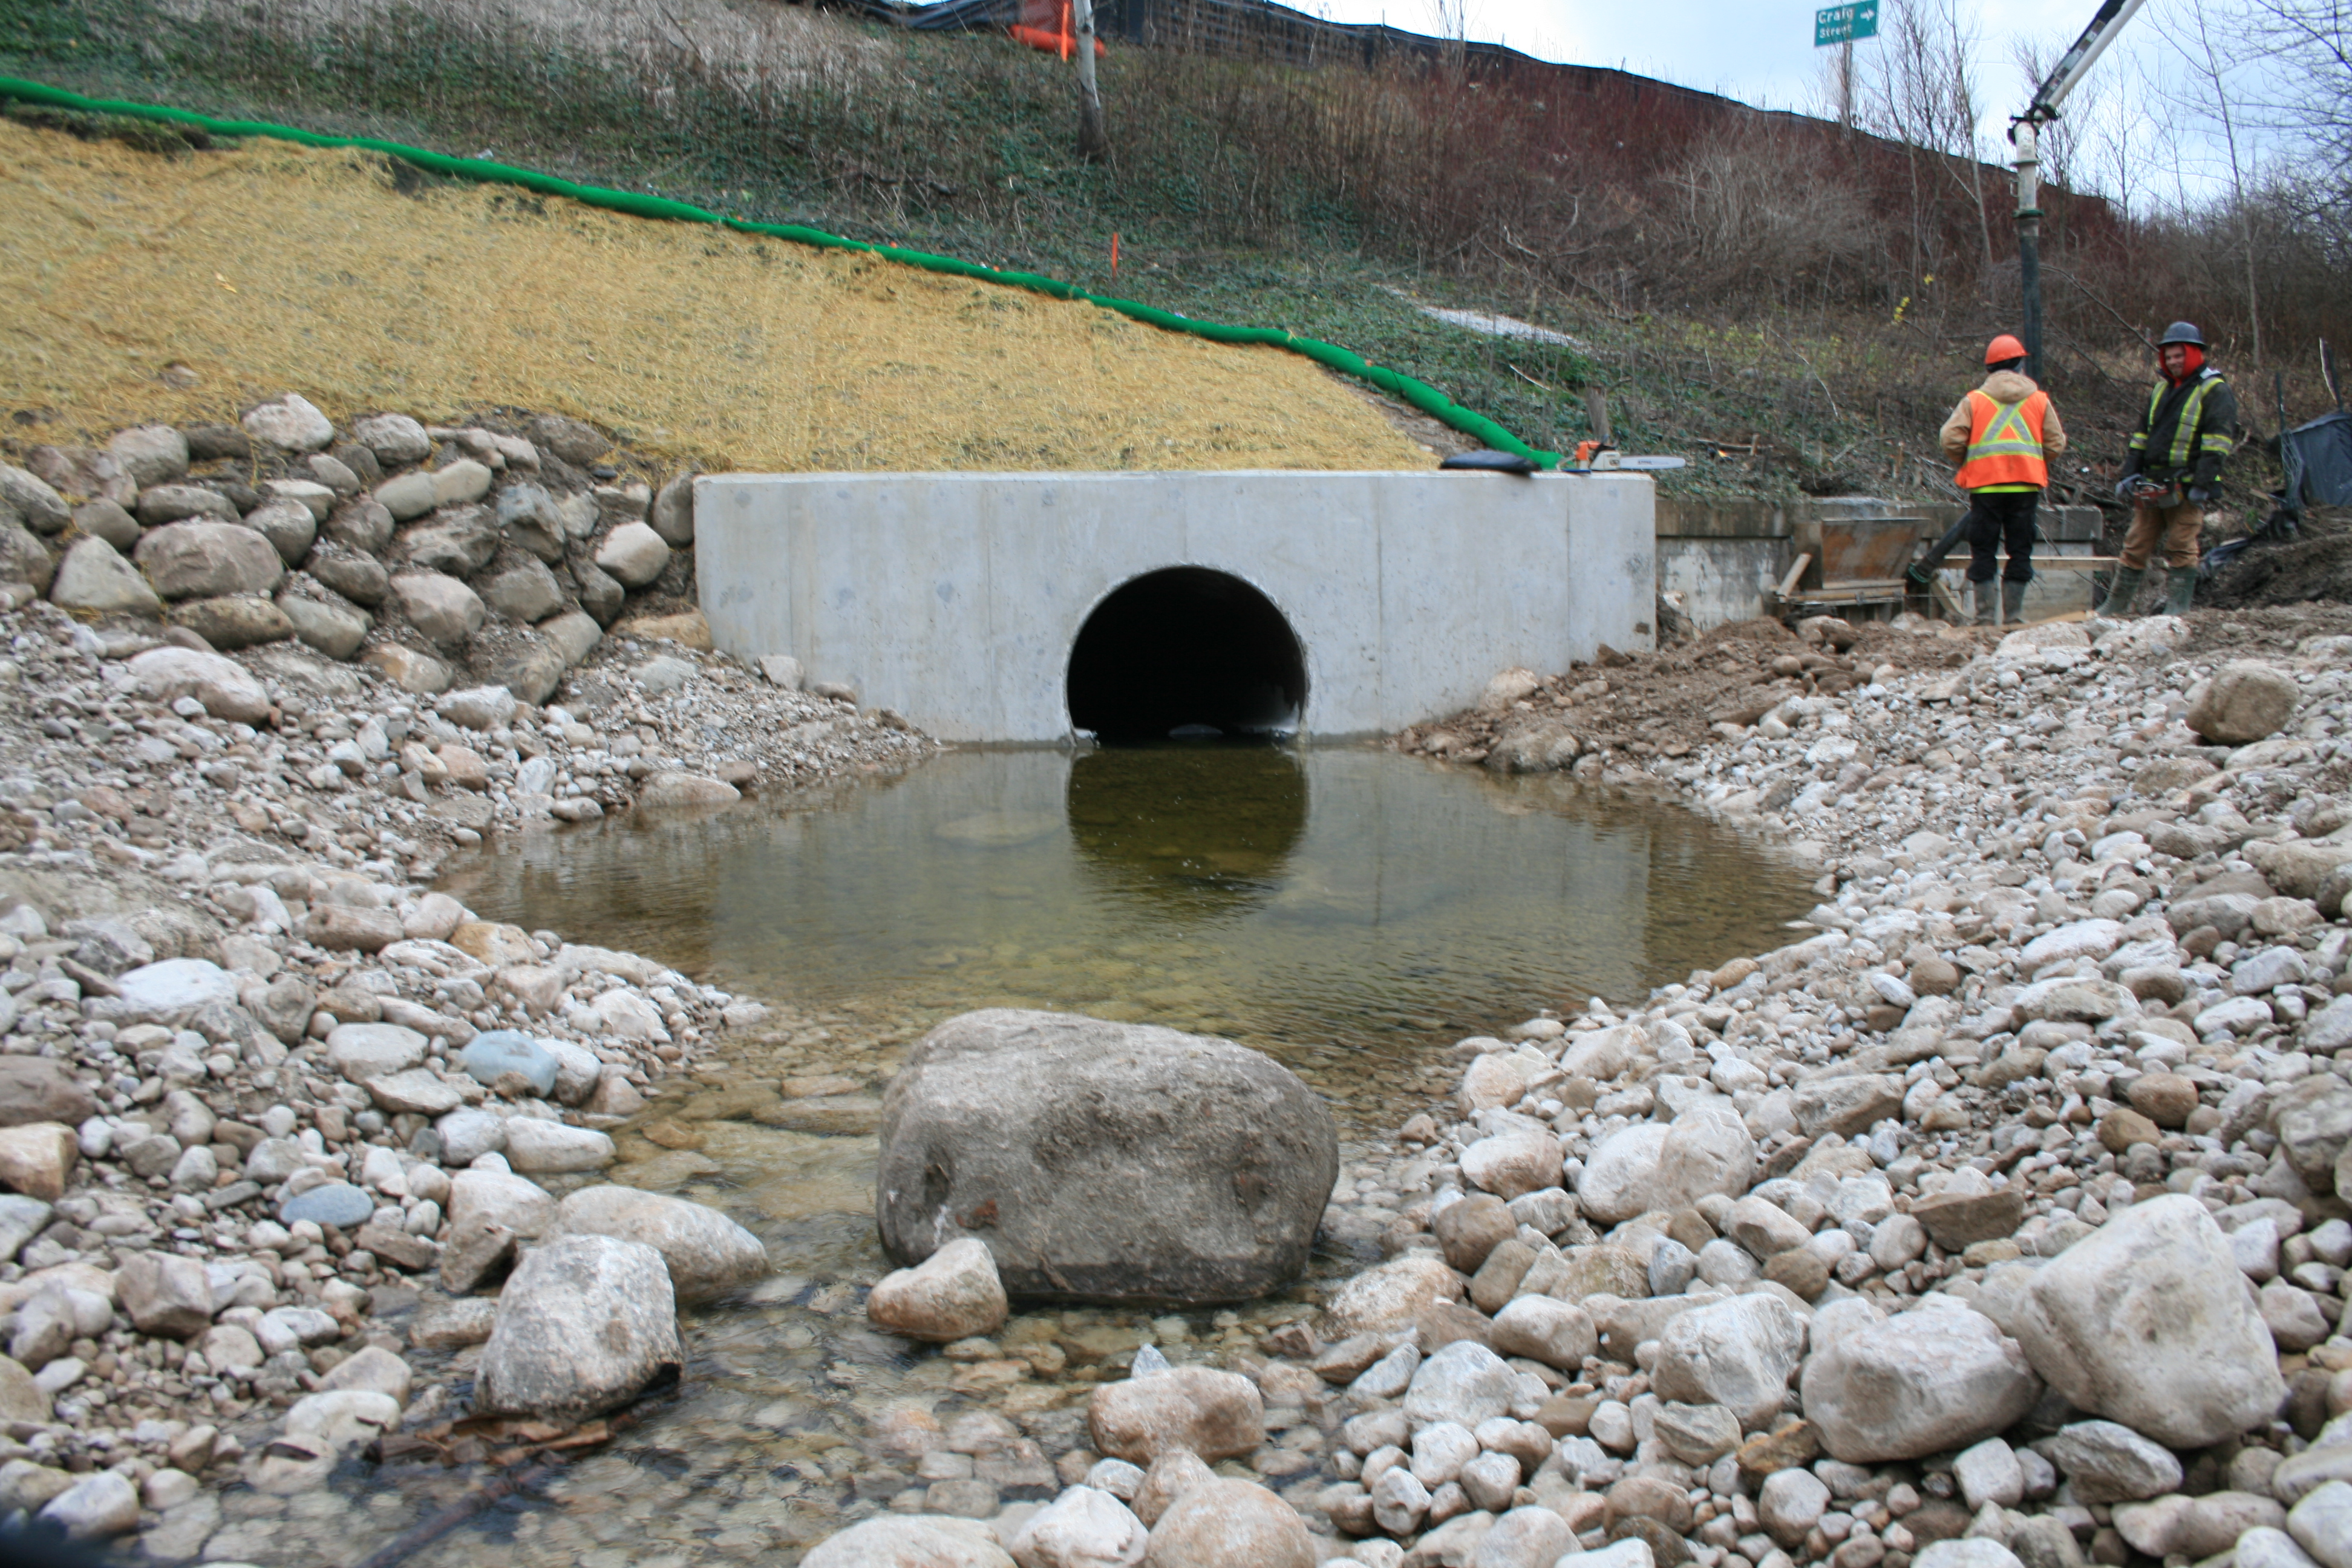 Upstream view of the new culvert. (Photo courtesy of CSPI)